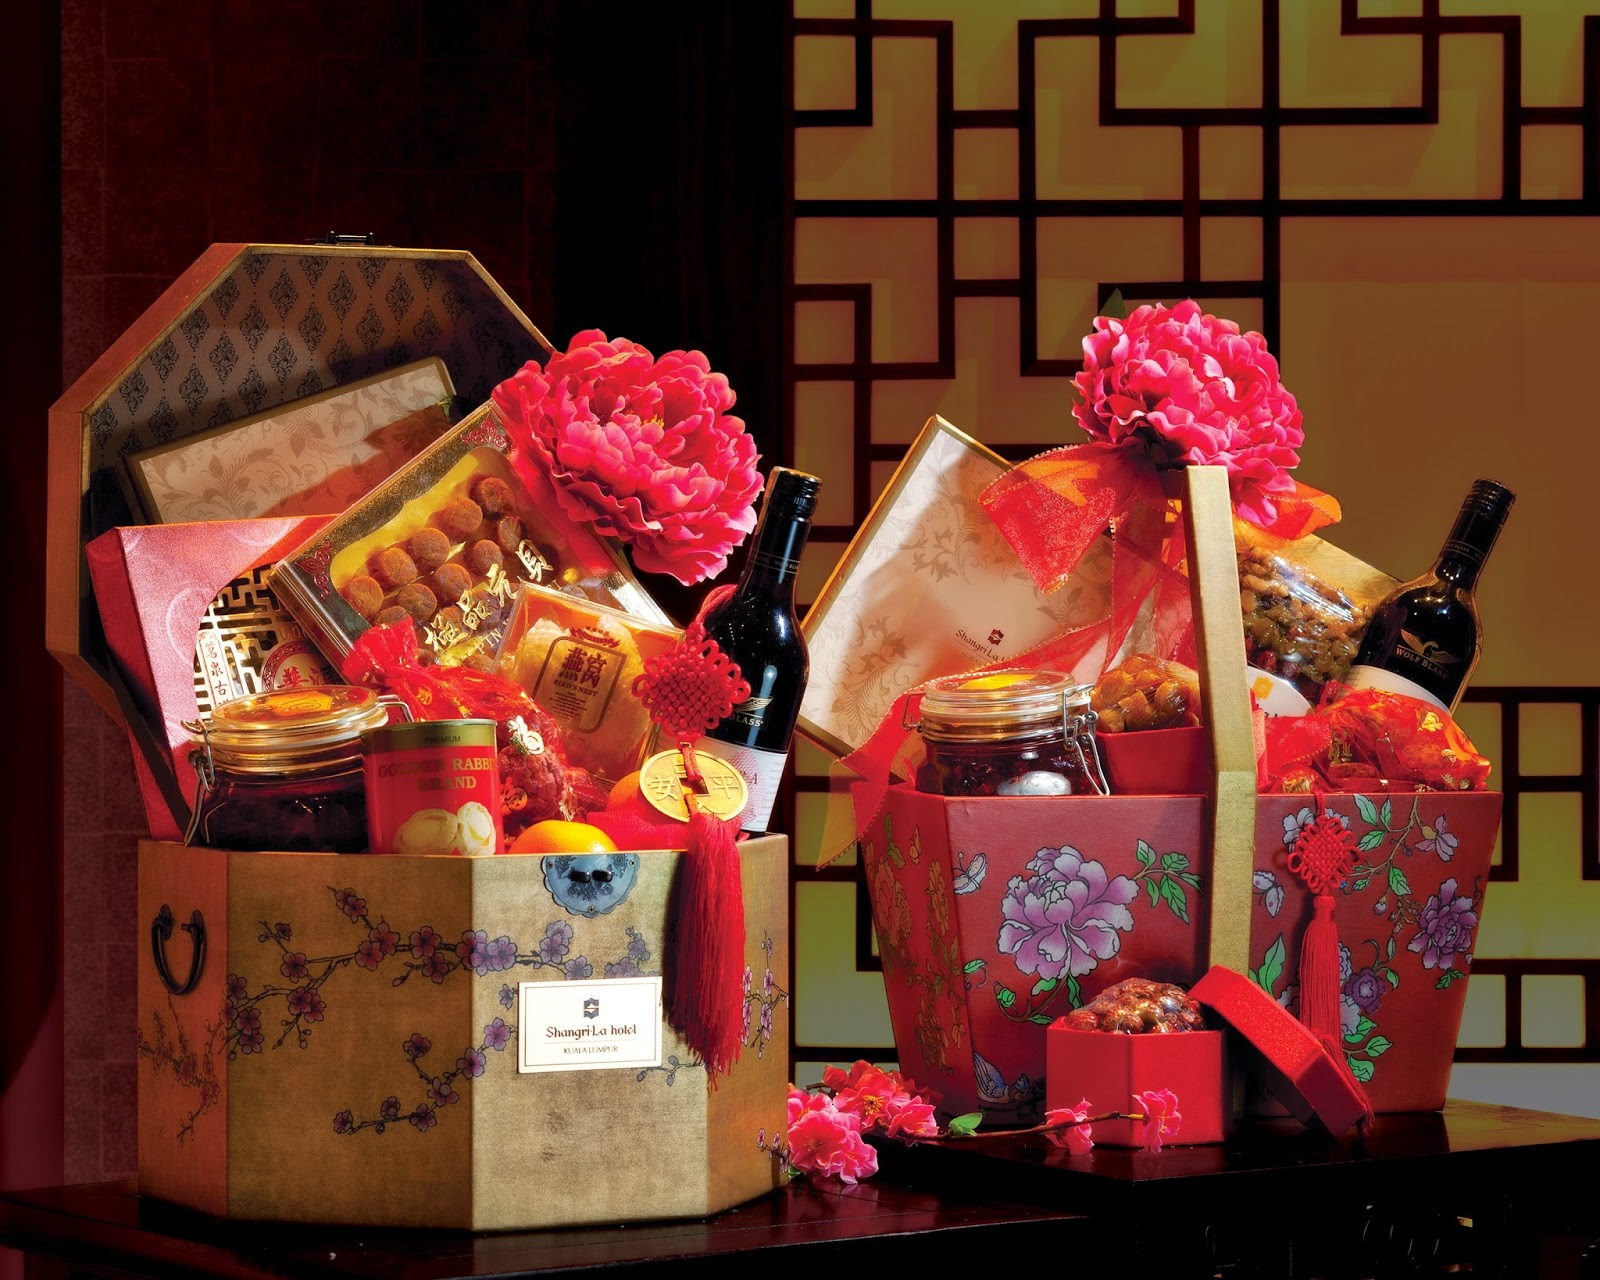 Best New House Gifts Kee Hua Chee Live May The Goat Scamper In With Hampers